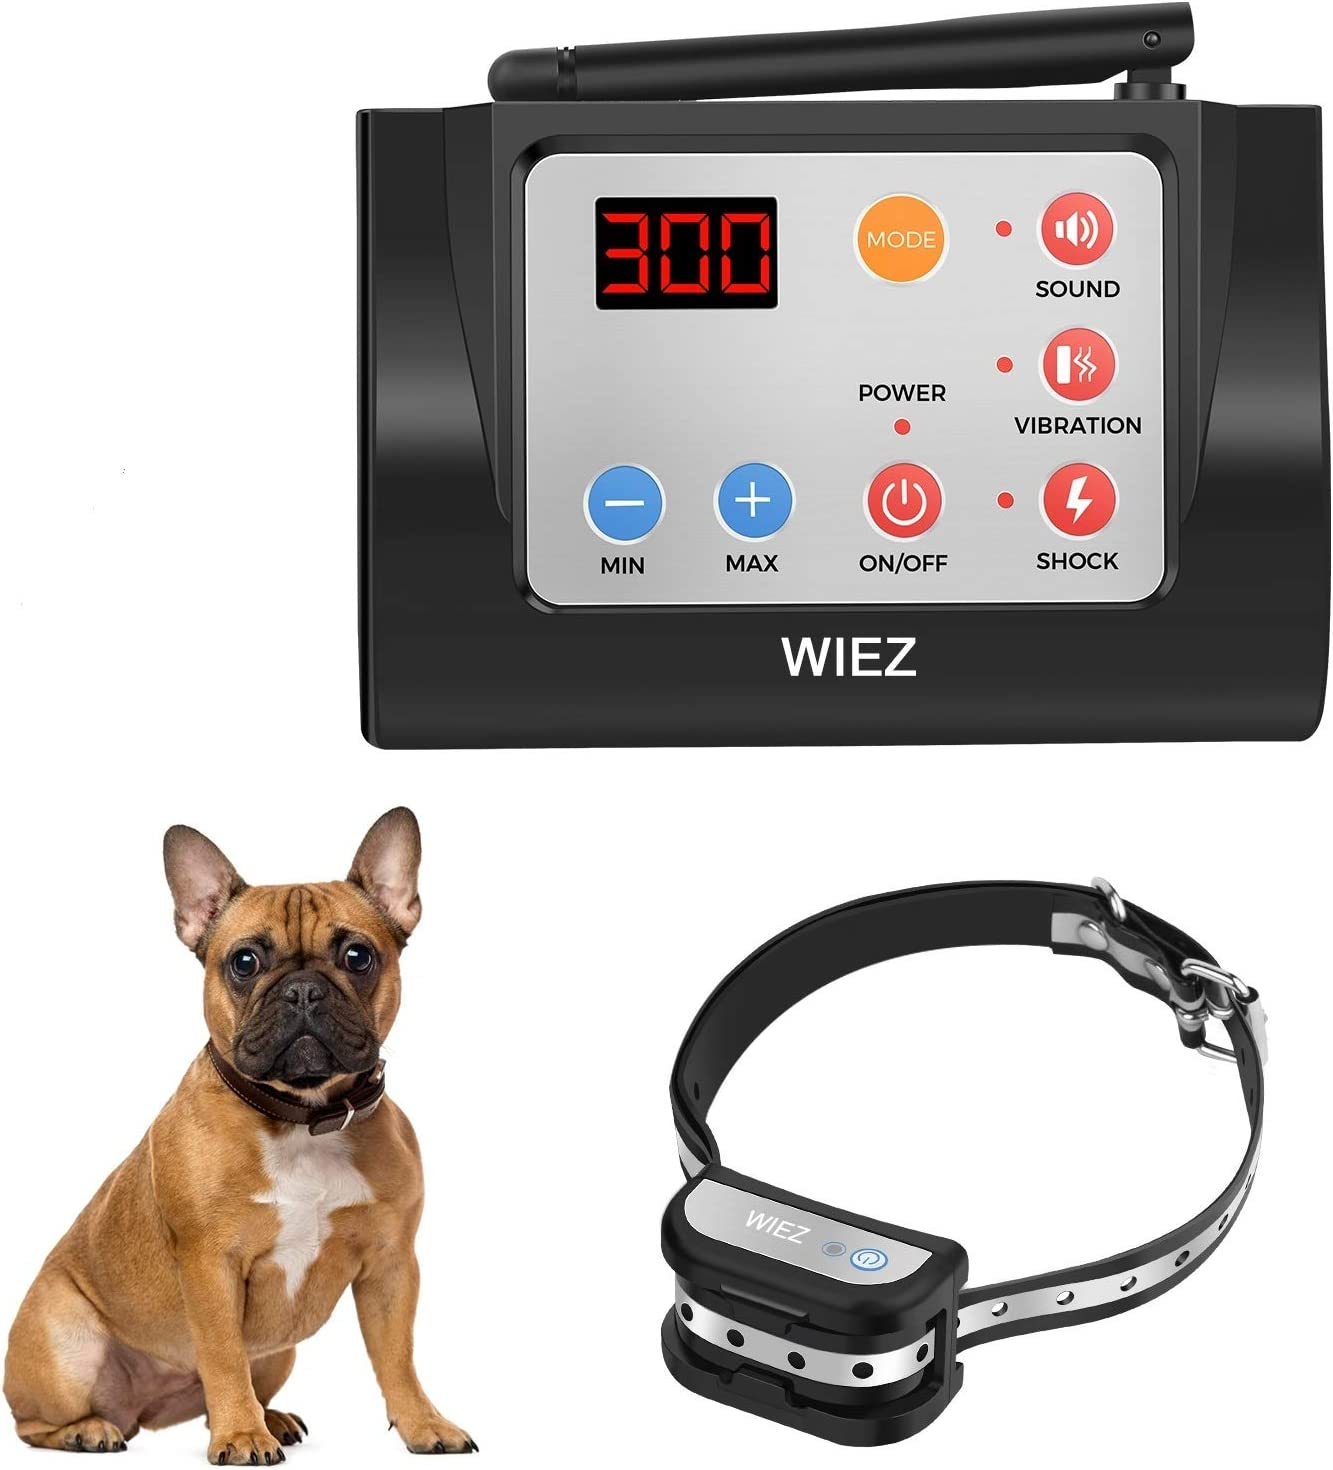 Waterproof Adjustable Range Harmless for All Dogs WIEZ Dog Fence Wireless /& Training Collar Outdoor 2-in-1 Electric Wireless Fence w//Remote Reflective Stripe